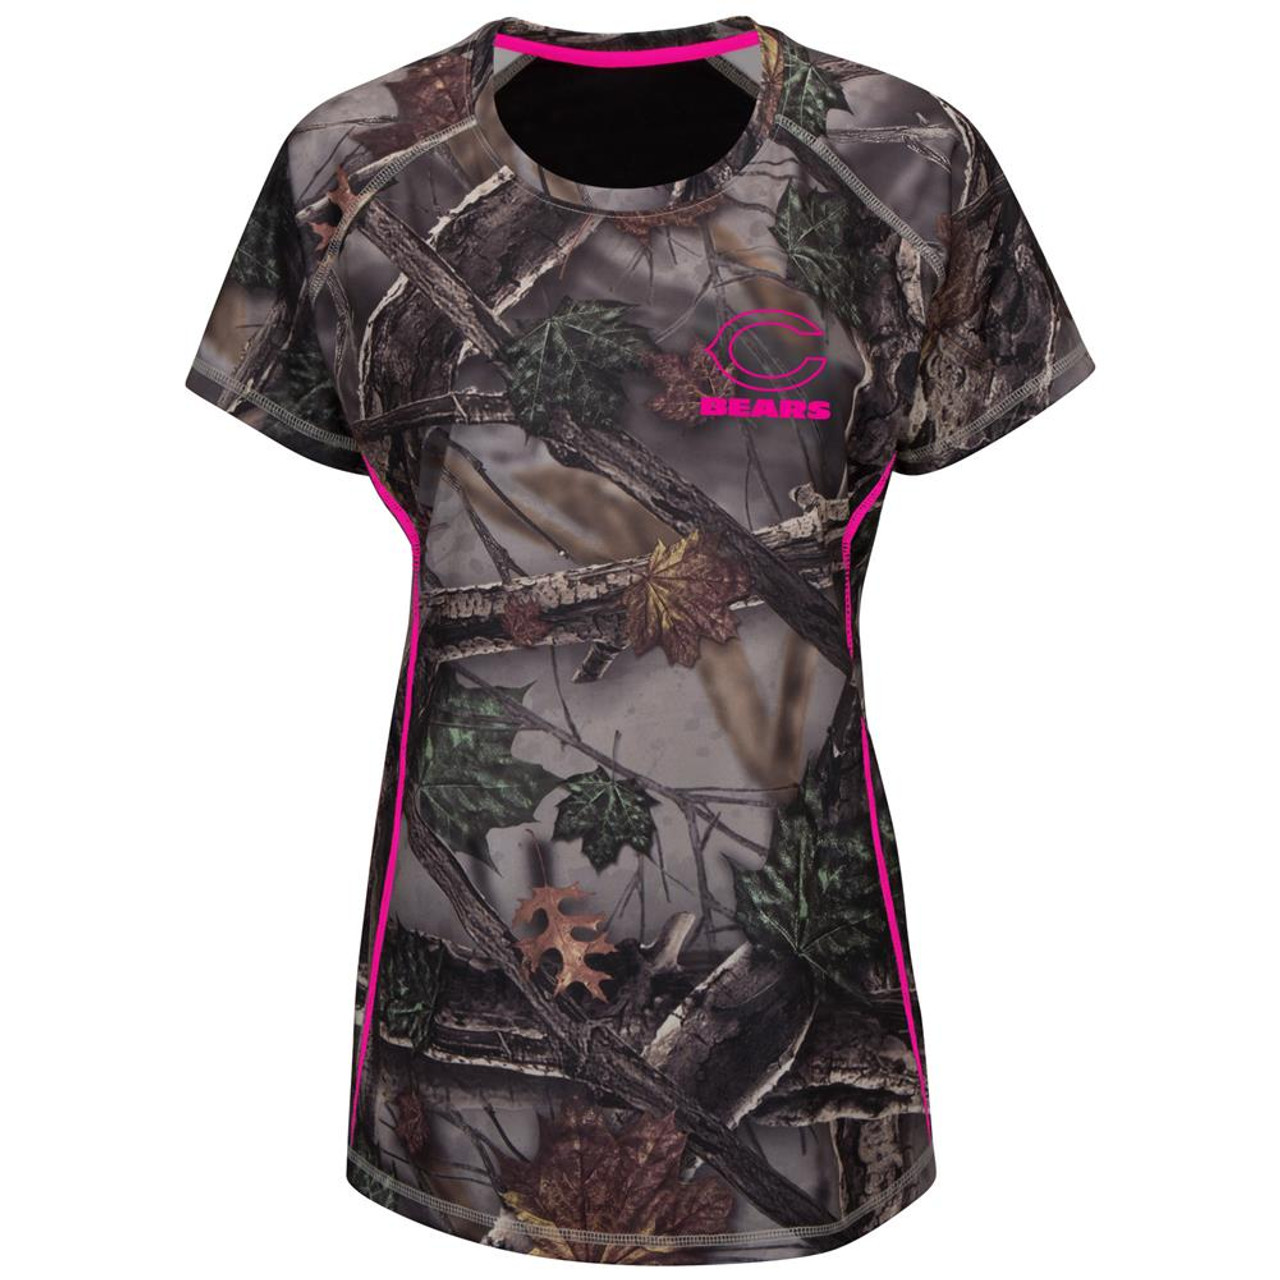 reputable site 9dcd4 a3489 Majestic Women's The Woods Chicago Bears Camo Tee